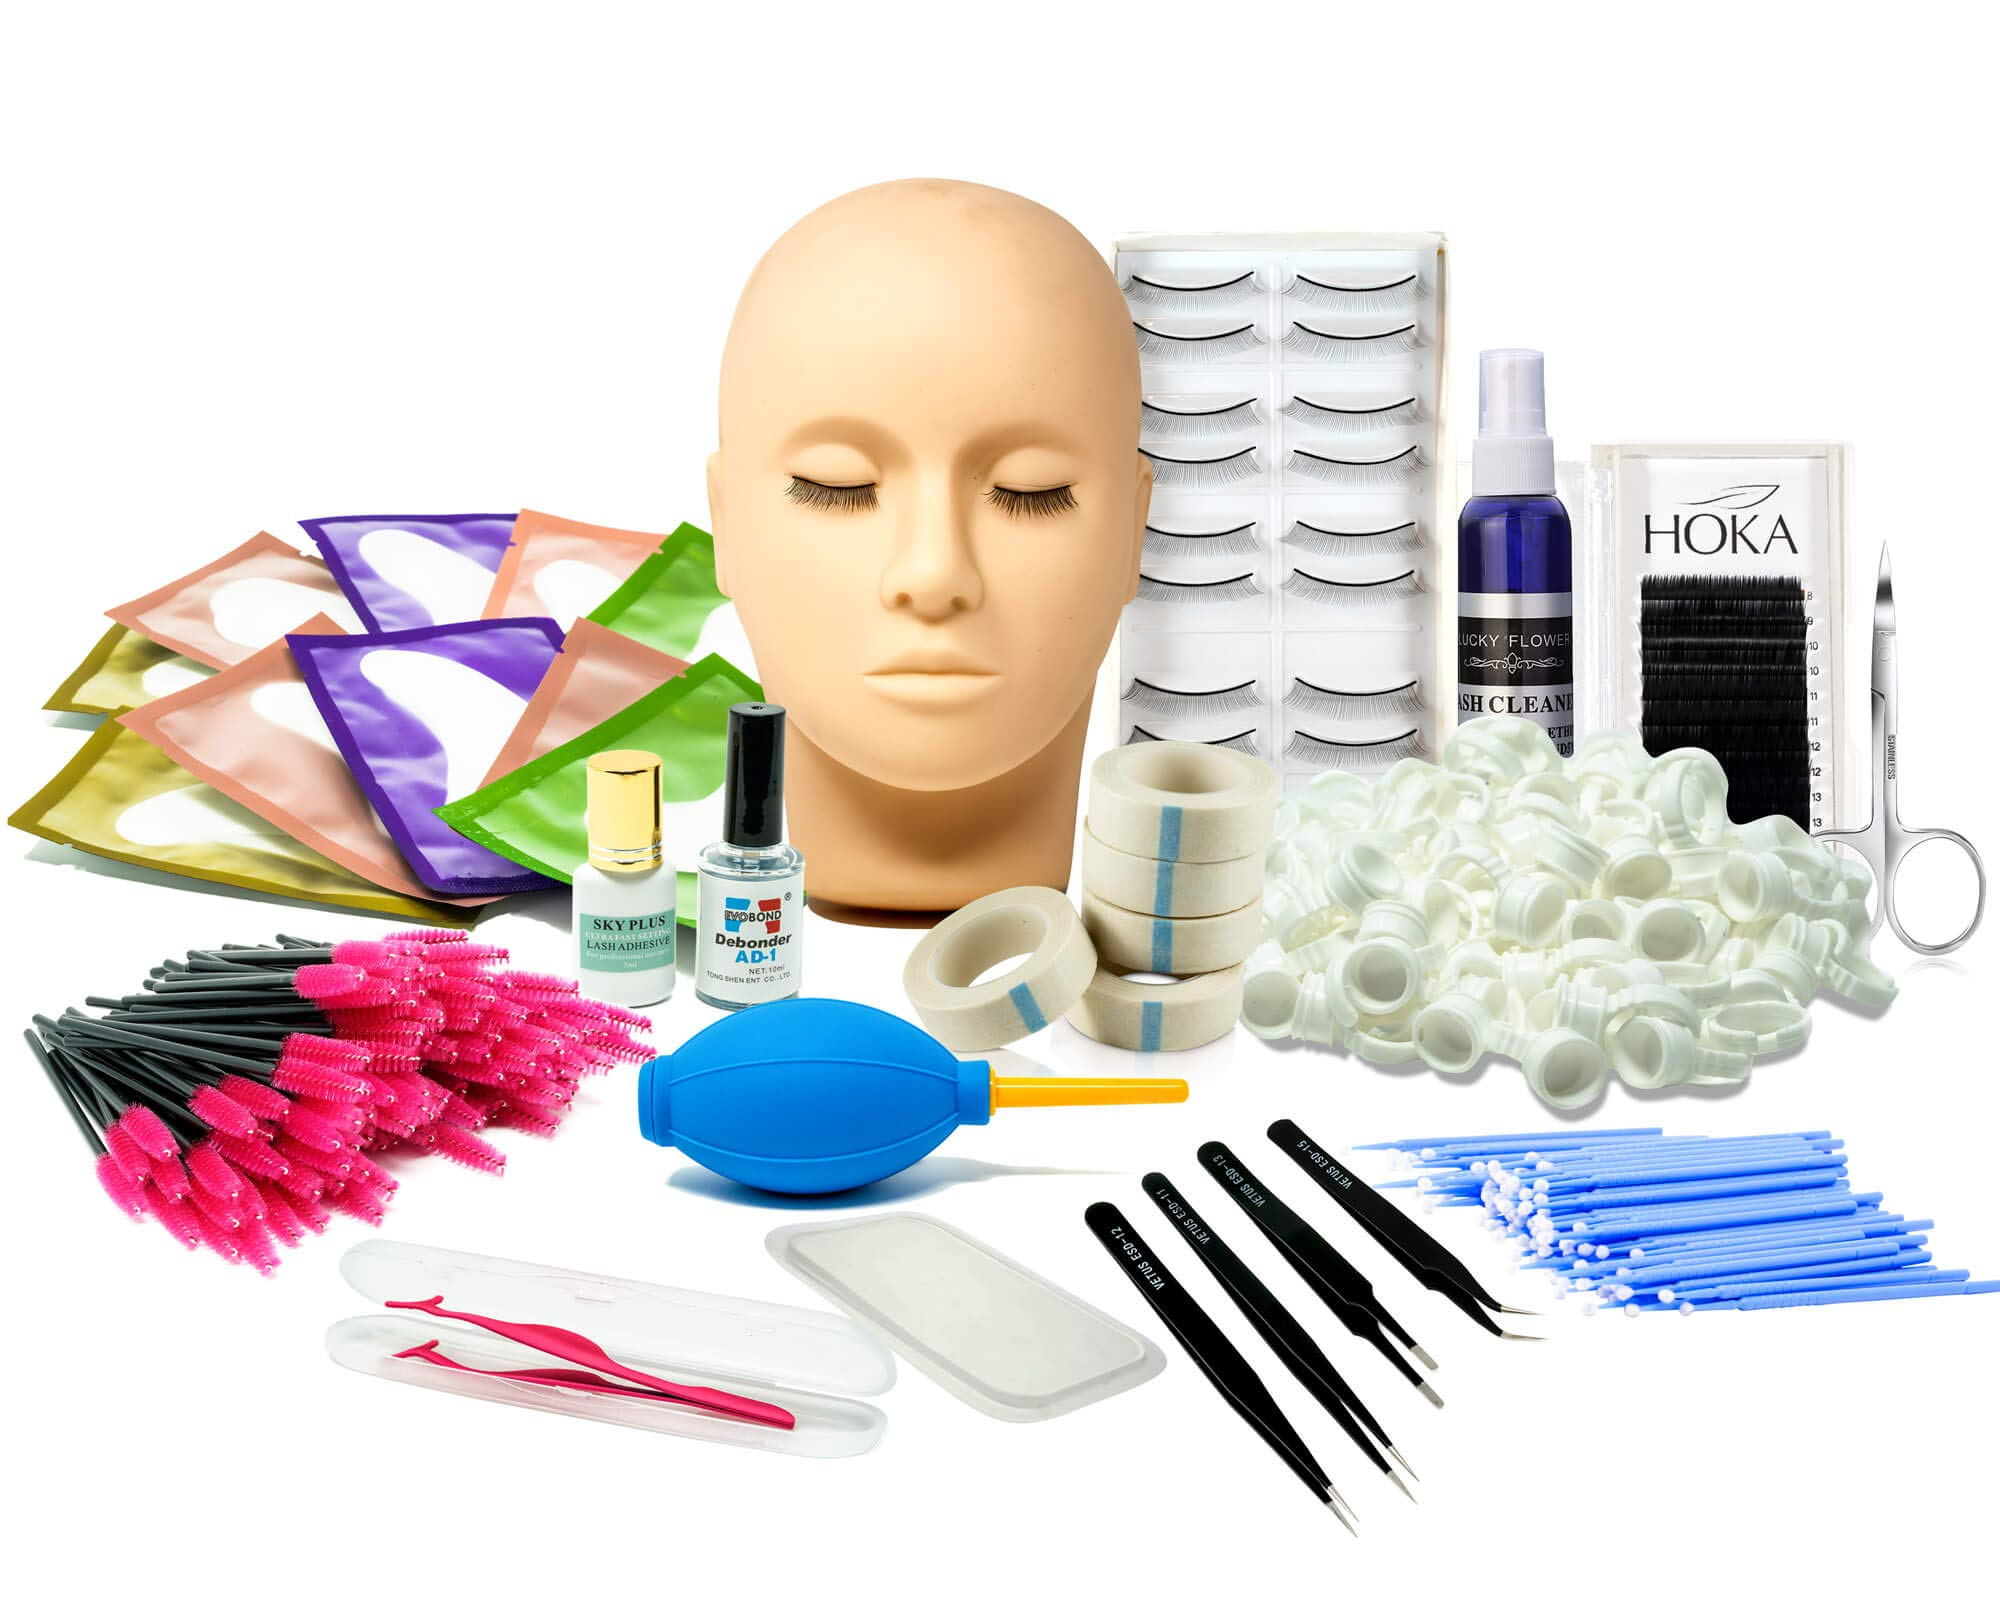 Lash Eyelash Extension Kit: Professional Mannequin Head Training For Beginners Eyelashes Extensions Practice Cosmetology Esthetician Supplies with Mink Individual Eye Lashes Glue Tweezers Tools Case by HOKA